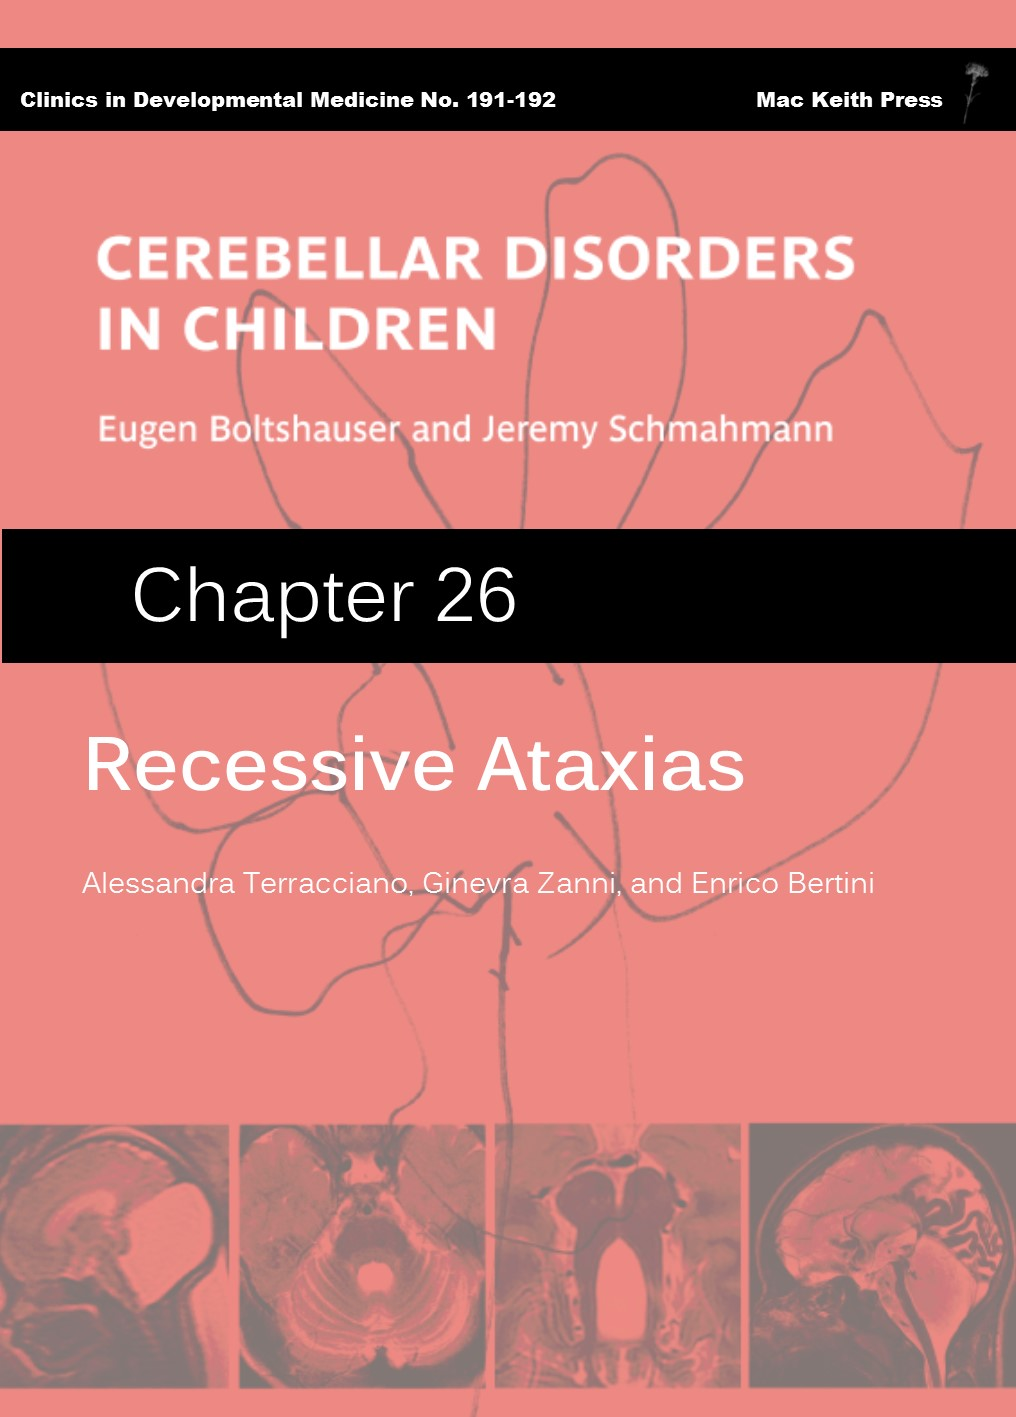 Recessive Ataxias - Cerebellar Disorders in Children (Chapter 26) COVER